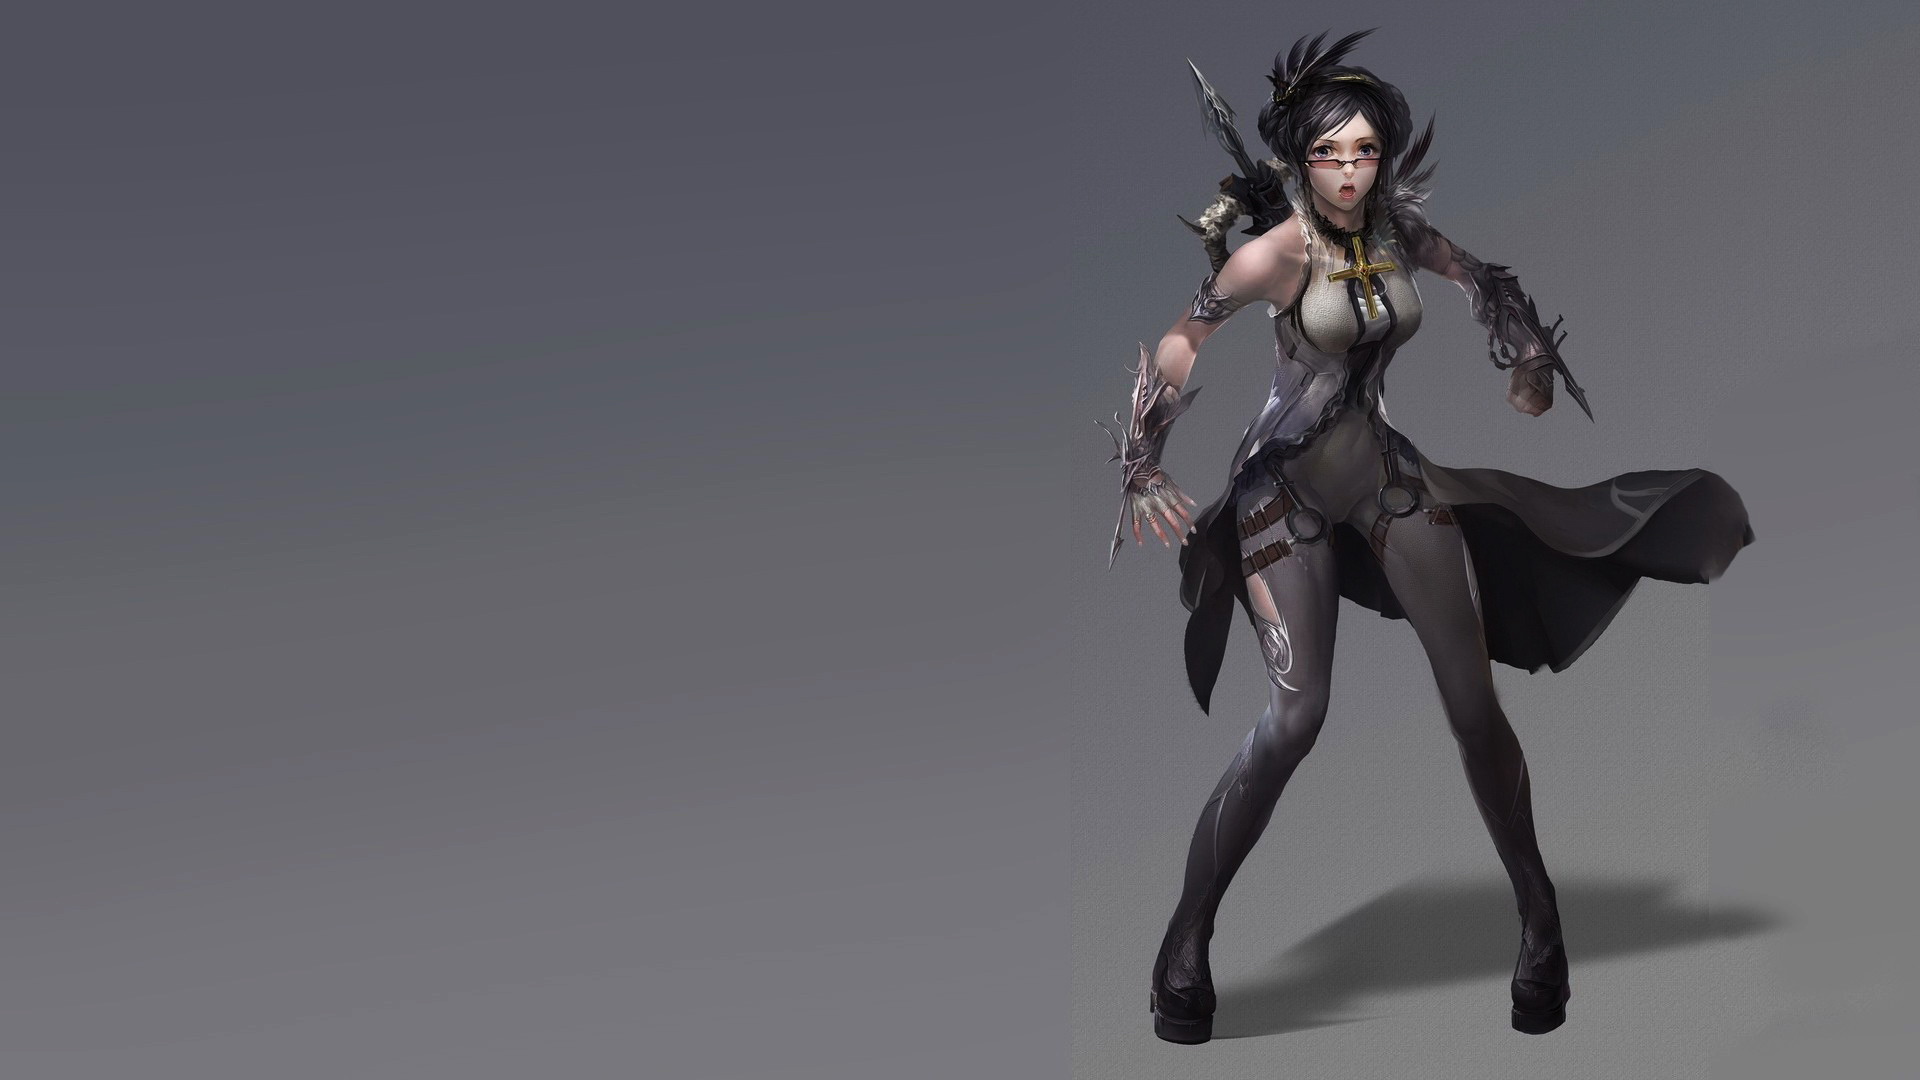 Vayne Skin Art Wallpaper HD